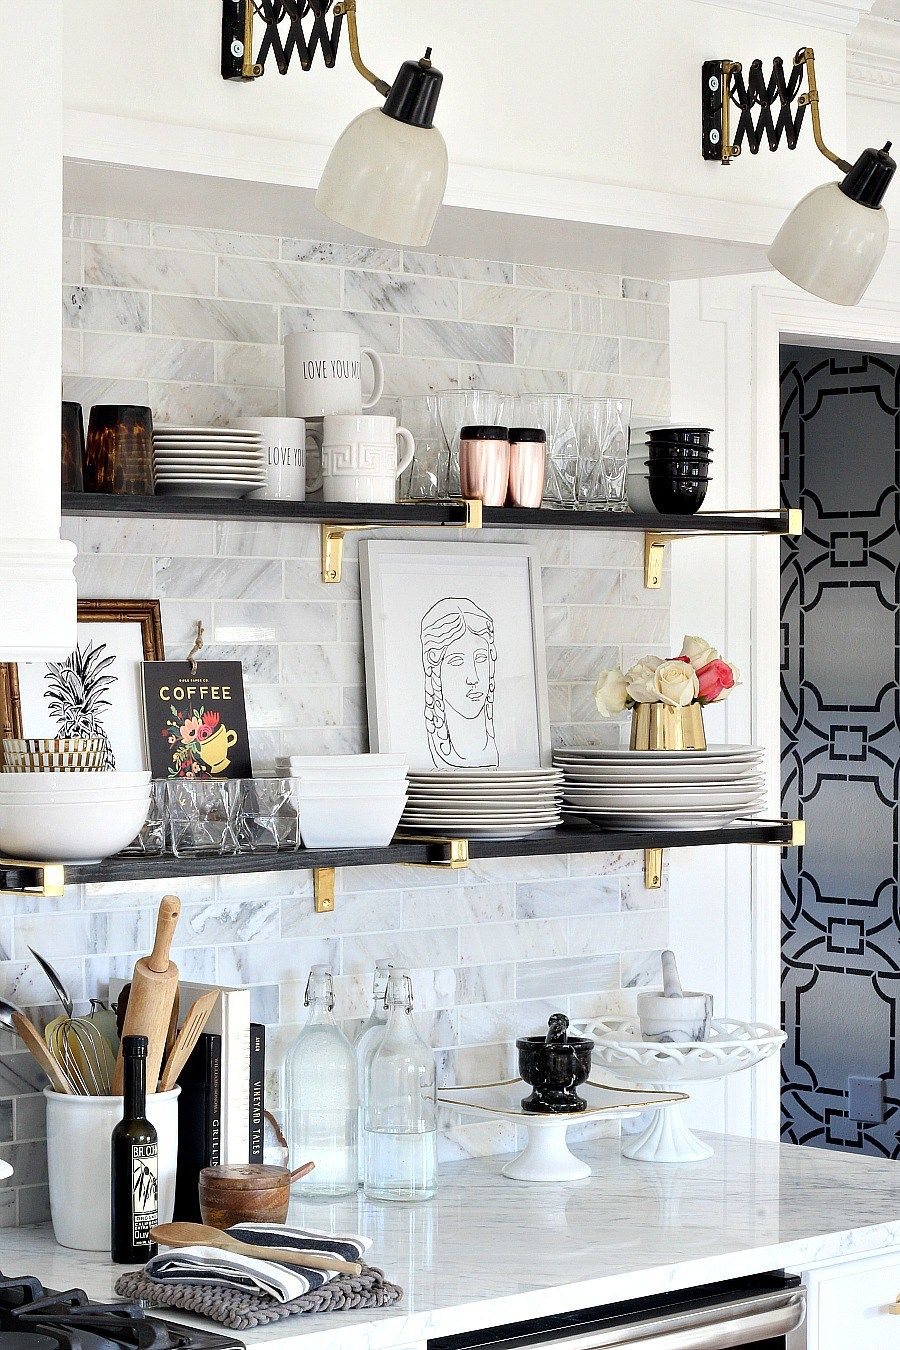 our black gold marble and chic kitchen makeover reveal bloggers floating shelf glam shelving ideas heavy duty invisible brackets notebook computer collapsible wall desk stainless